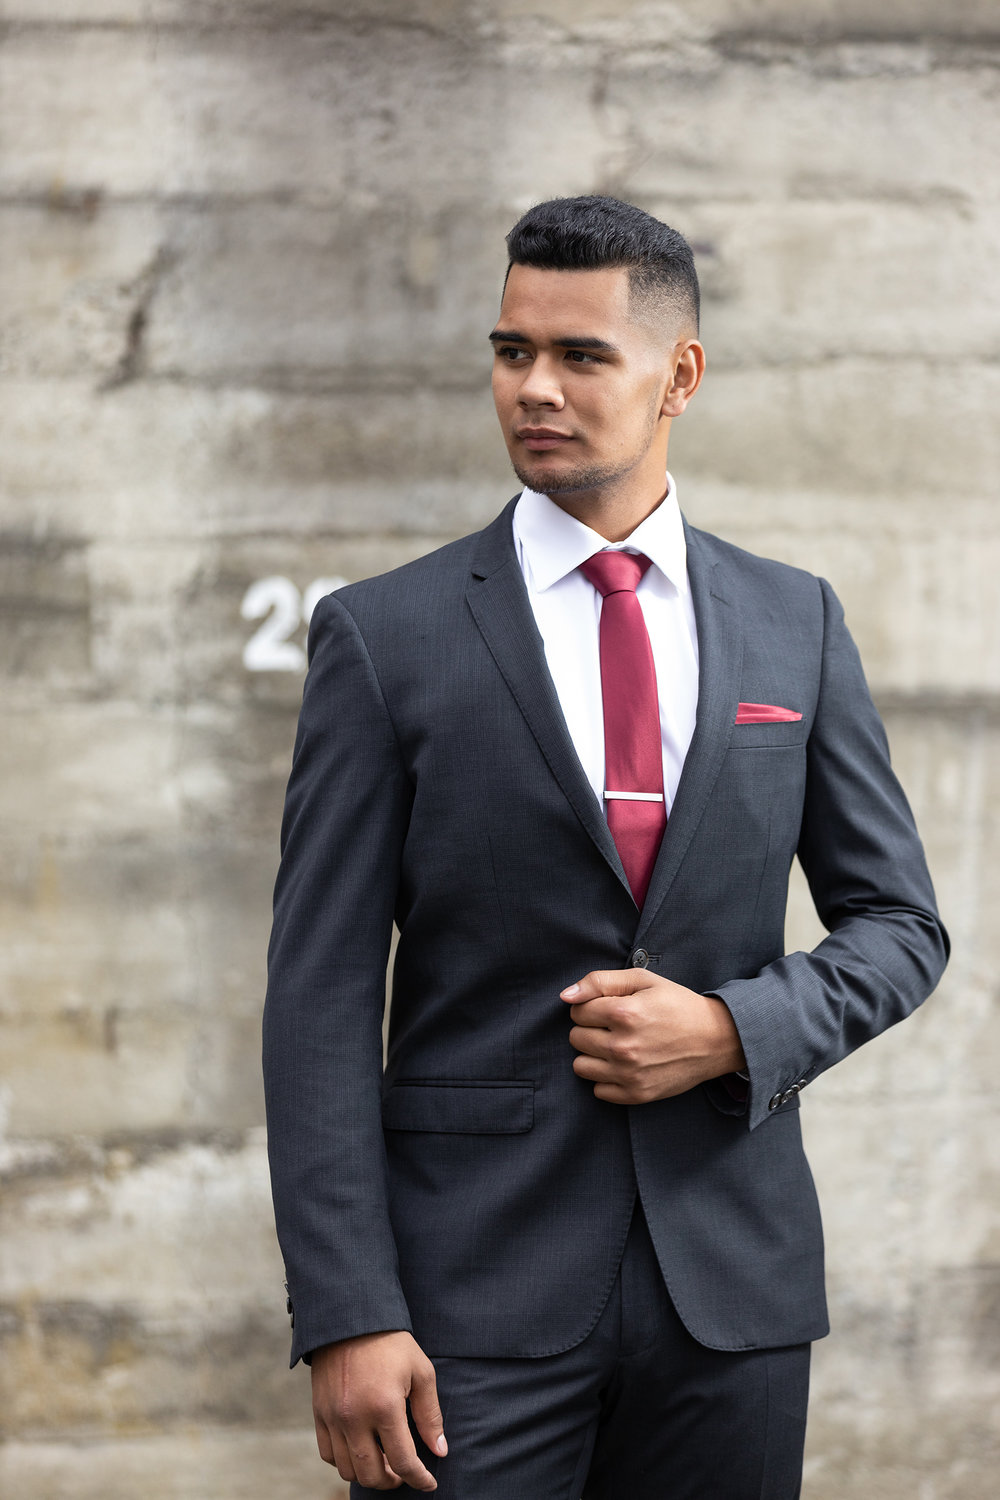 Charcoal - Slim Fit- Notch lapel- 2 button suit jacket- Tapered suit trouserHire price $120 NZDReg: 88—132Short: 88—128Tall: 92—116